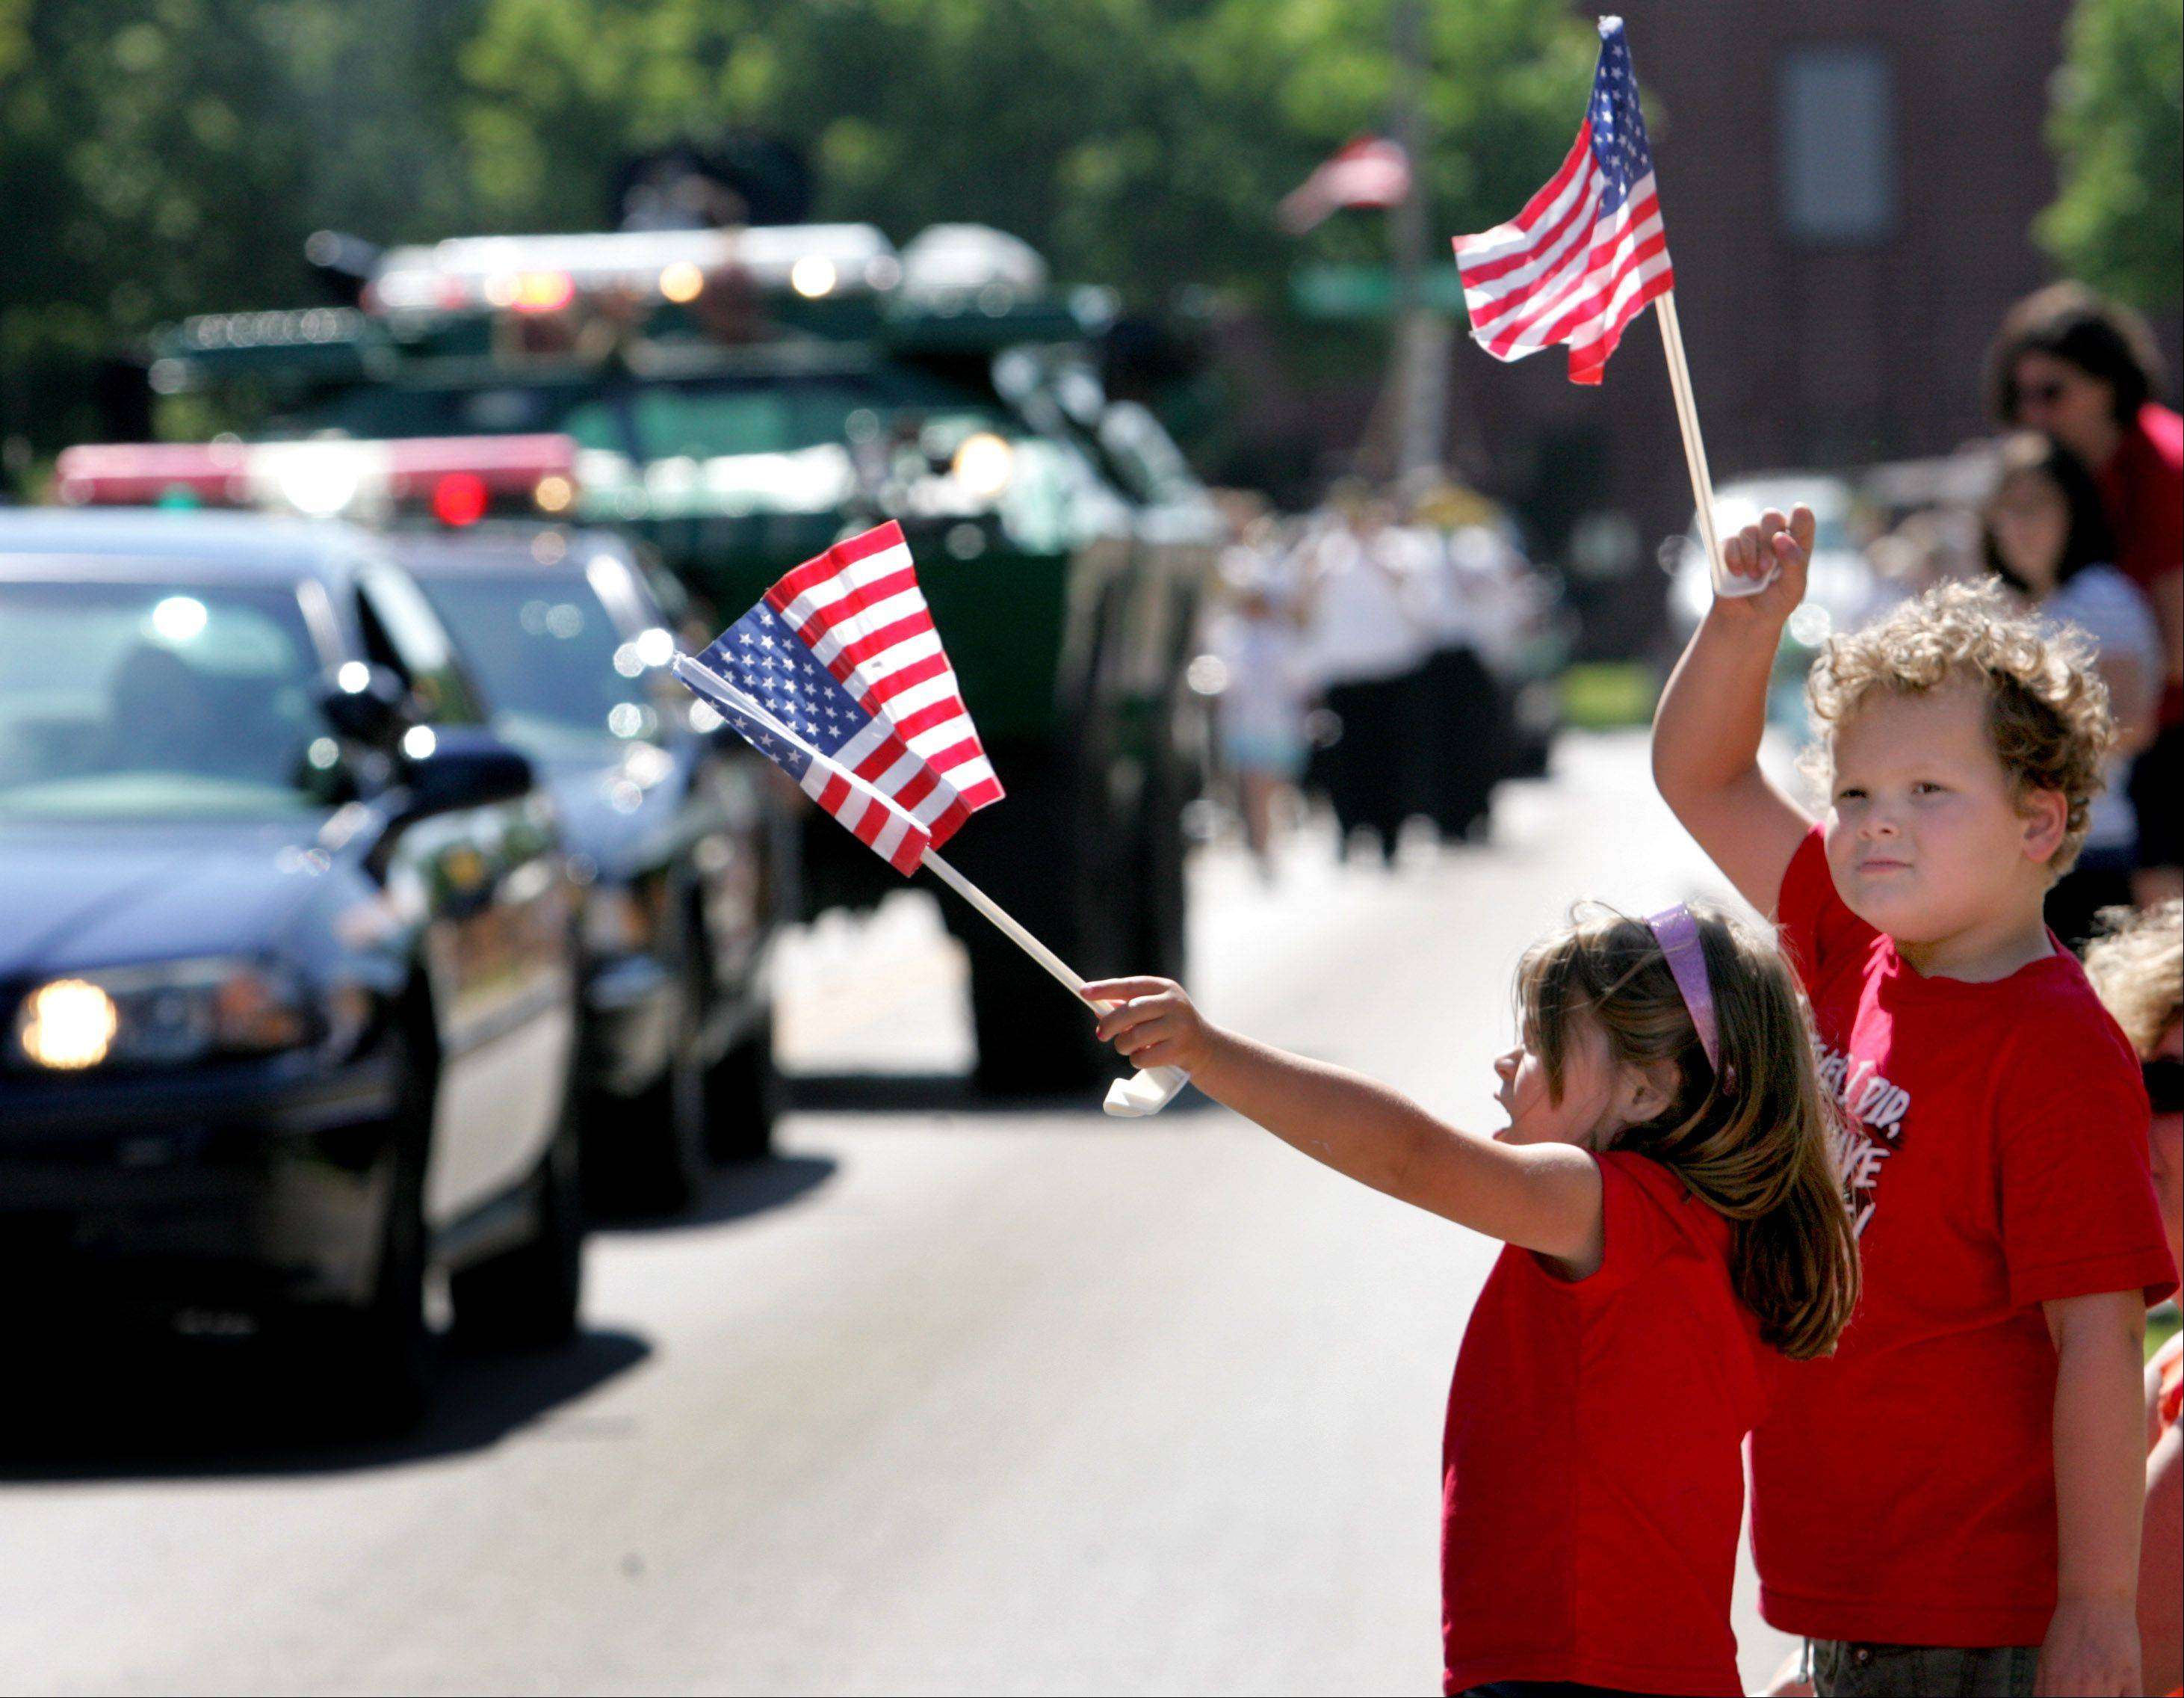 Lisle's Fourth of July parade is making its return to downtown Lisle for the first time since 1973 with a southbound march down Main Street, from School Street to Jonquil Avenue.